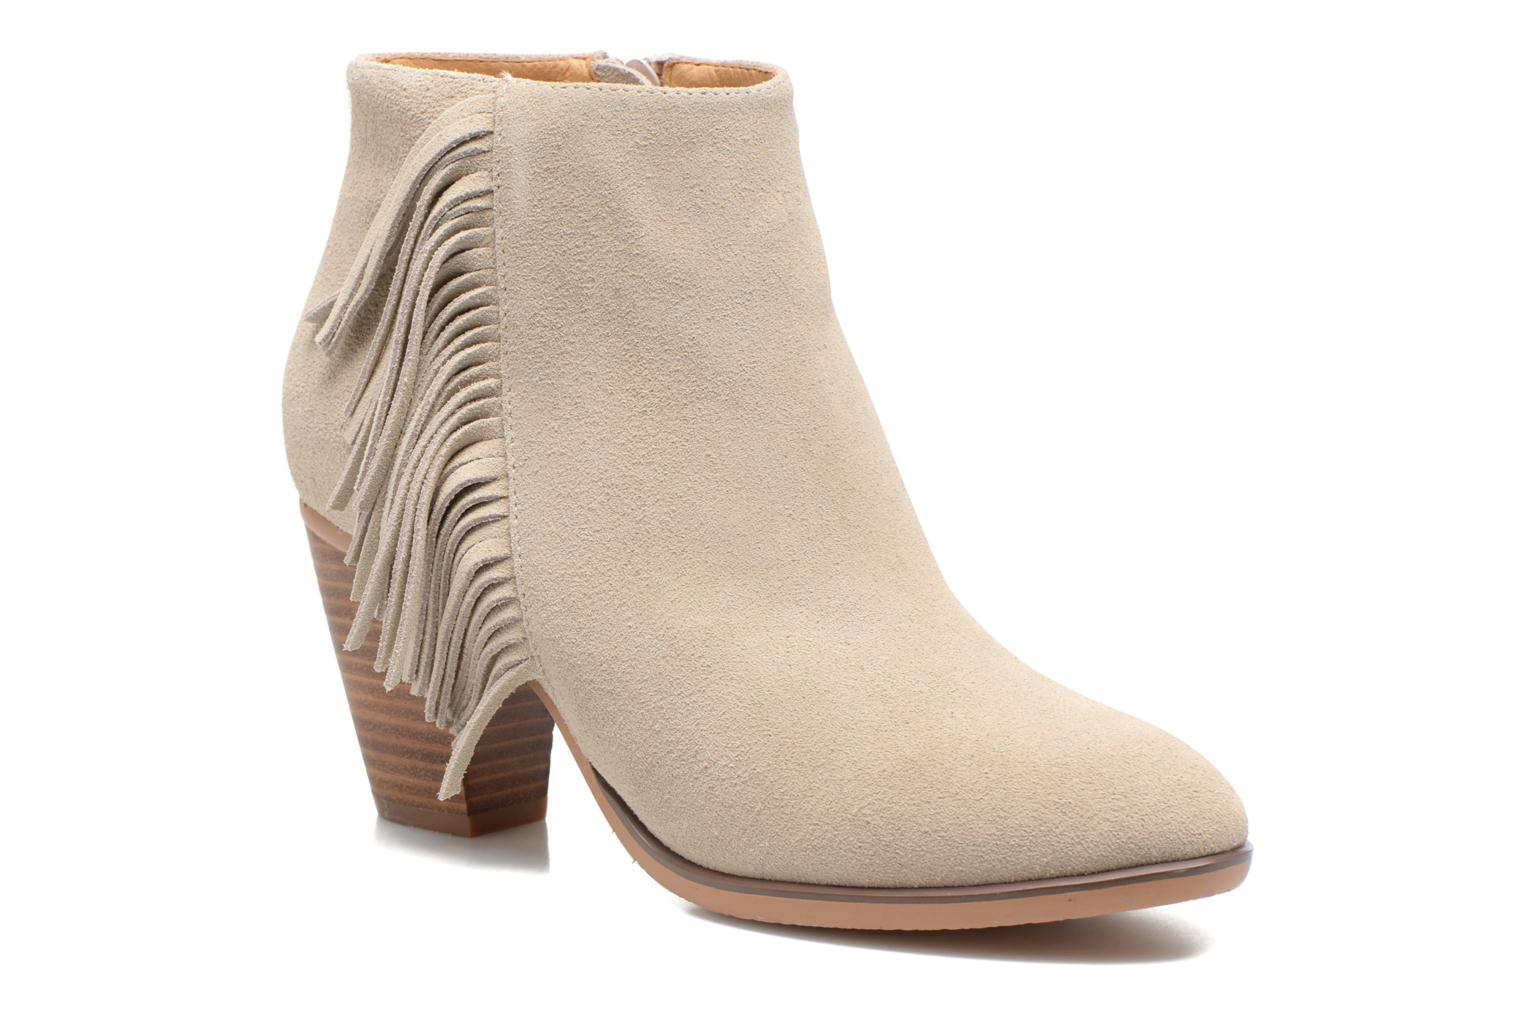 Bottines et boots Shoe the bear 70S Beige vue détail/paire